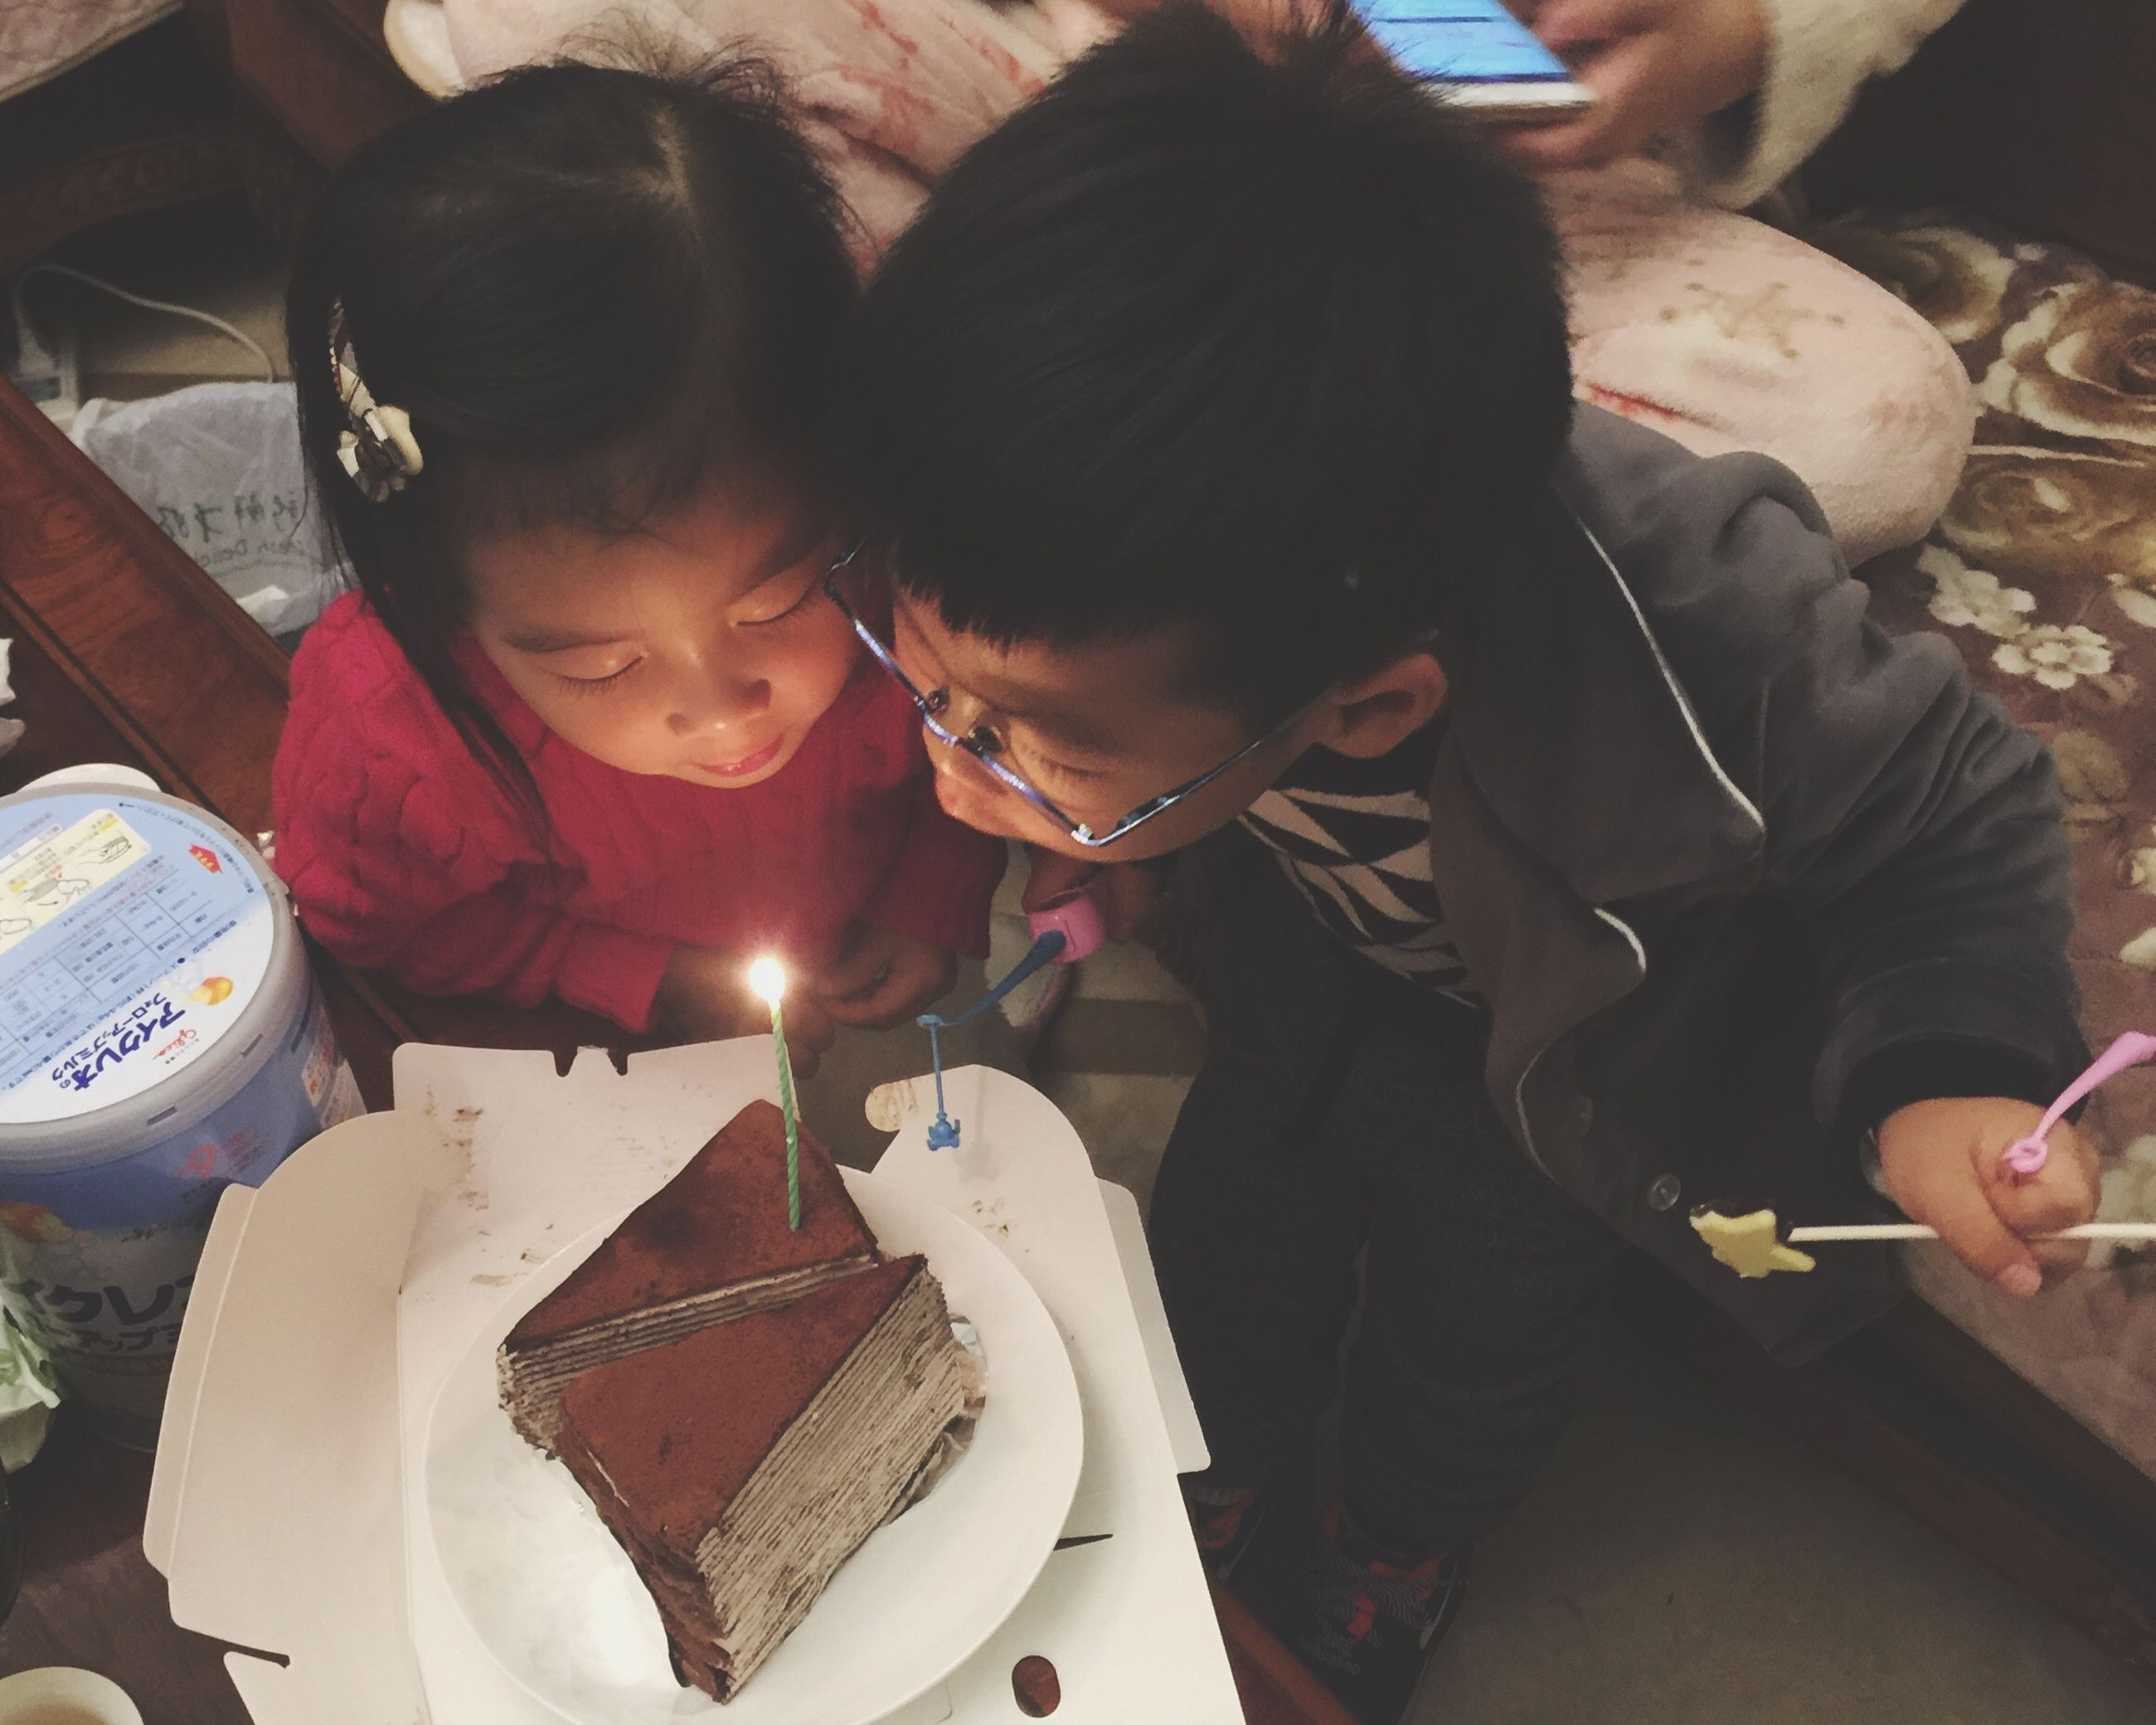 males, two people, real people, togetherness, love, happiness, family, indoors, adult, food, people, life events, birthday cake, young adult, birthday candles, day